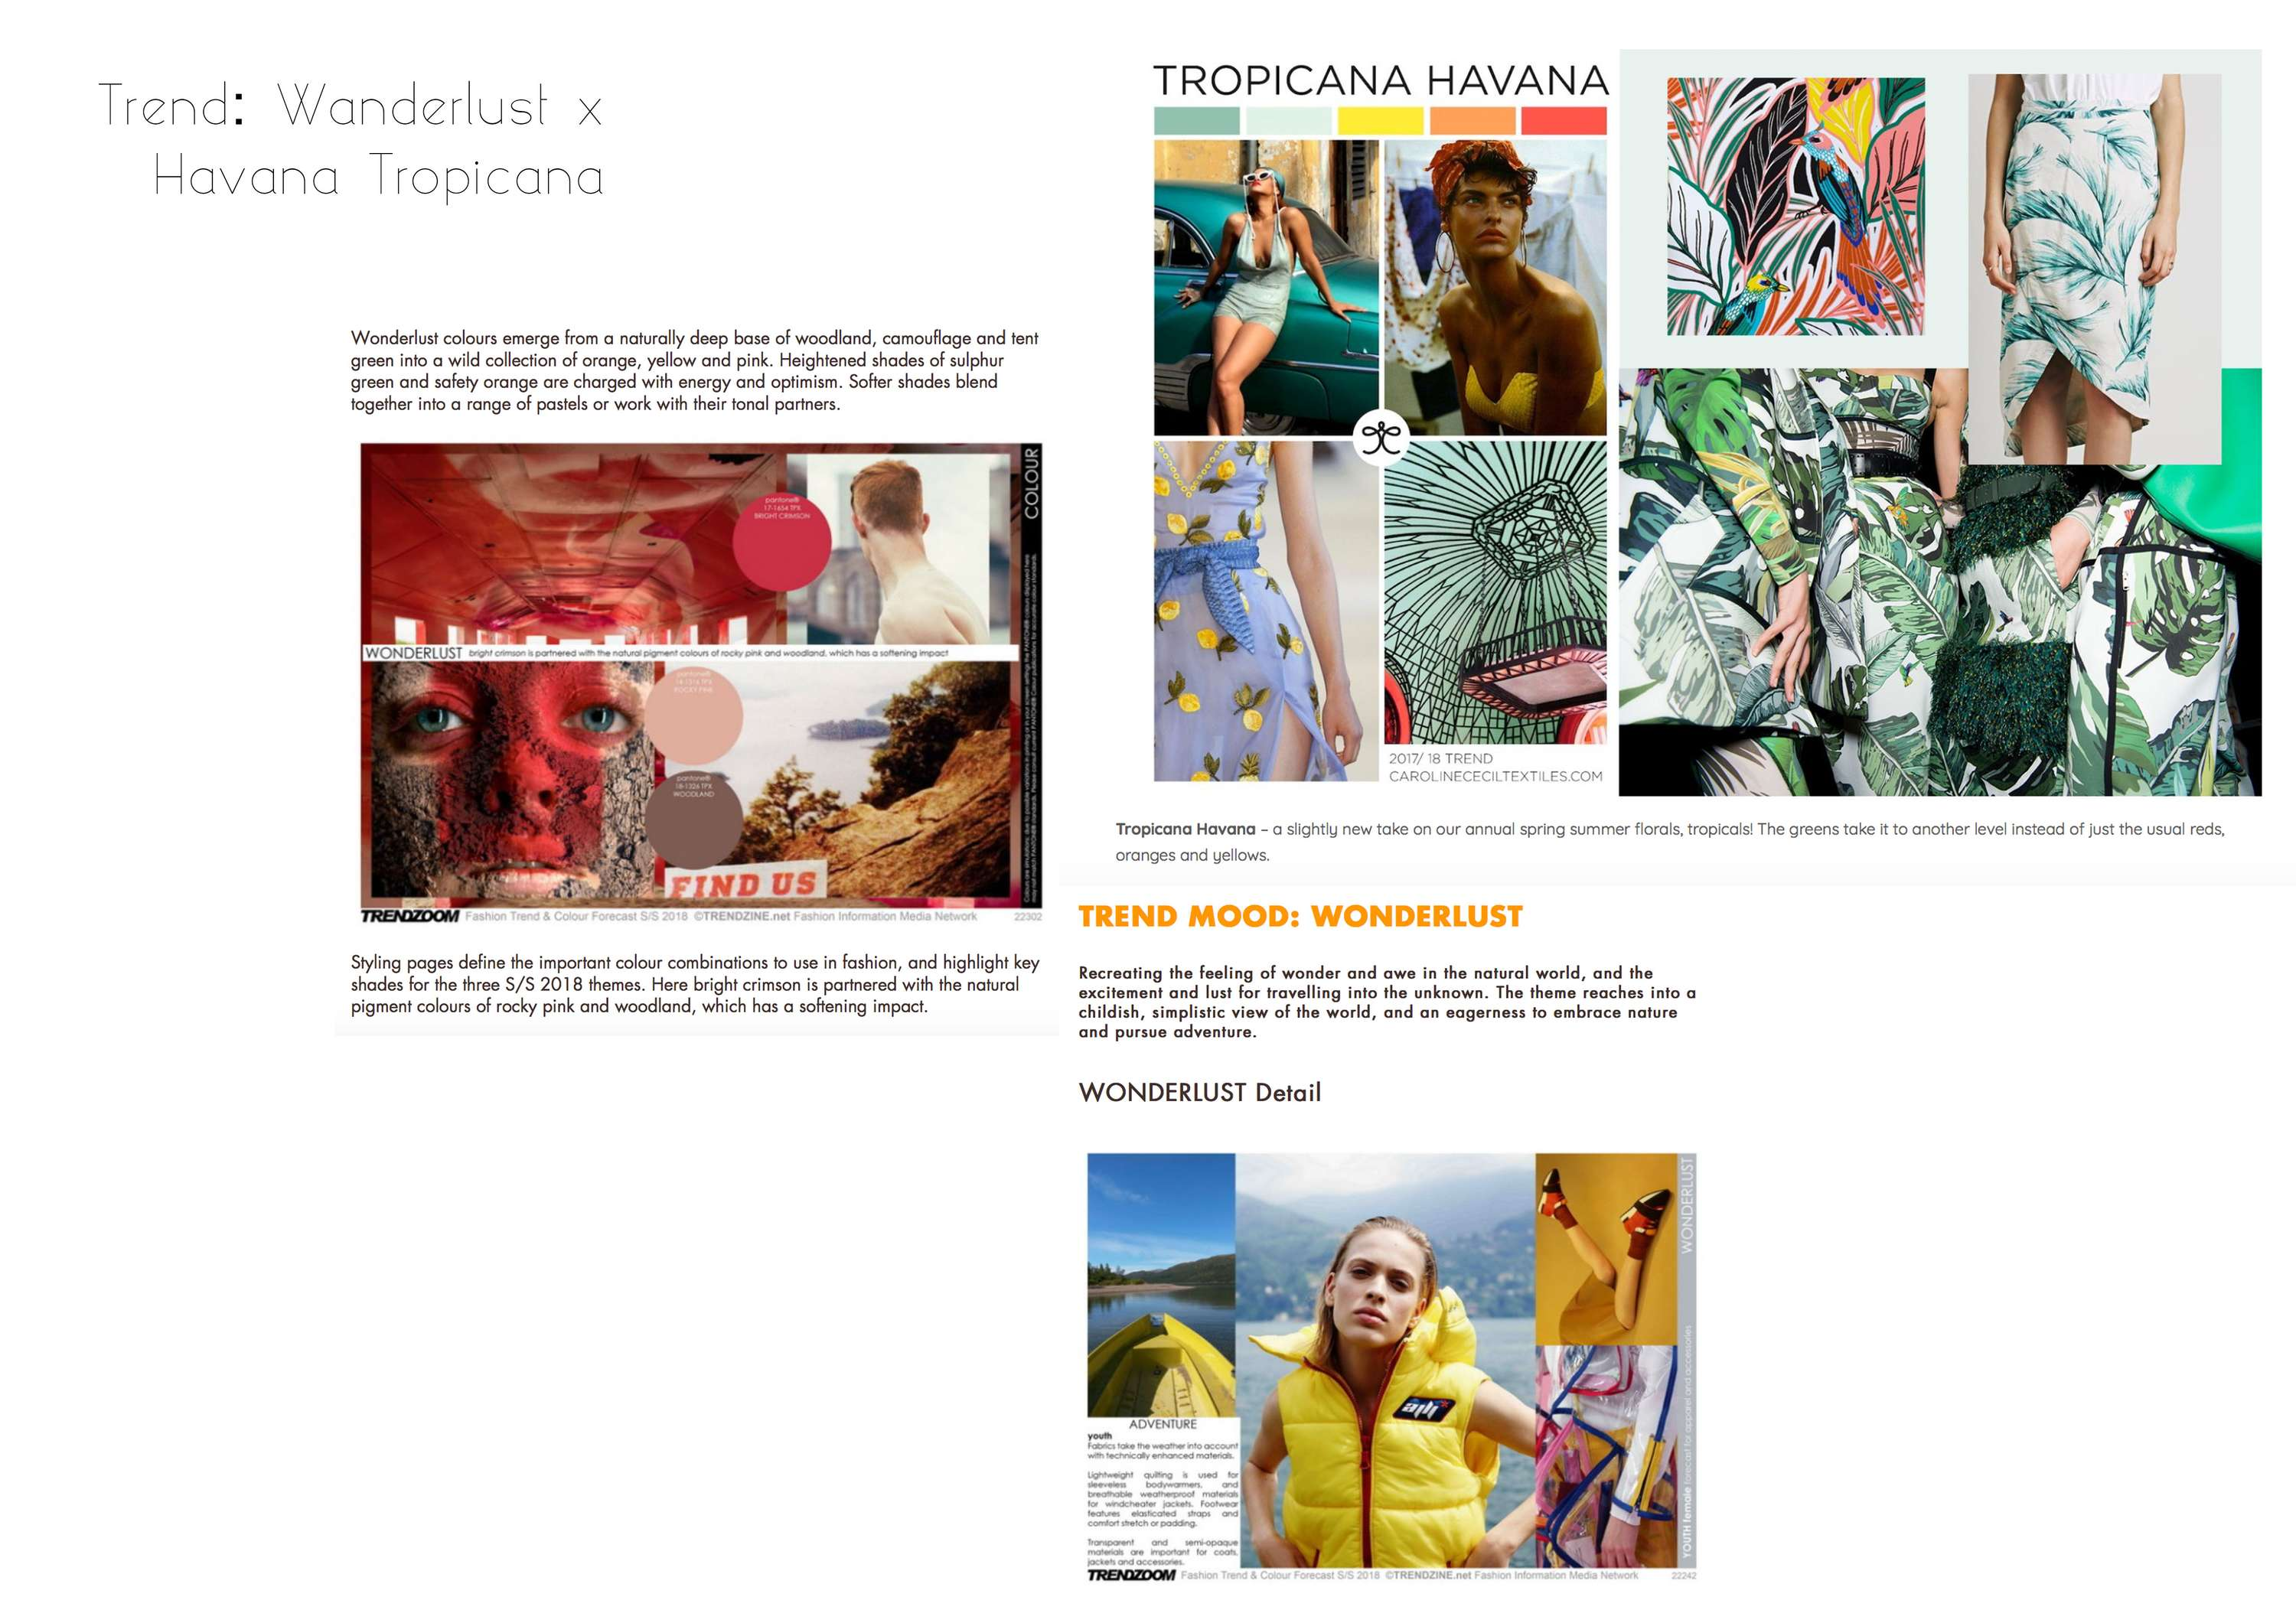 f8d703ecc2a ... on my portfolio I decided to look into trend research and explore print  design. I was inspired by the Wanderlust Trend as well as the Tropicana  Havana ...